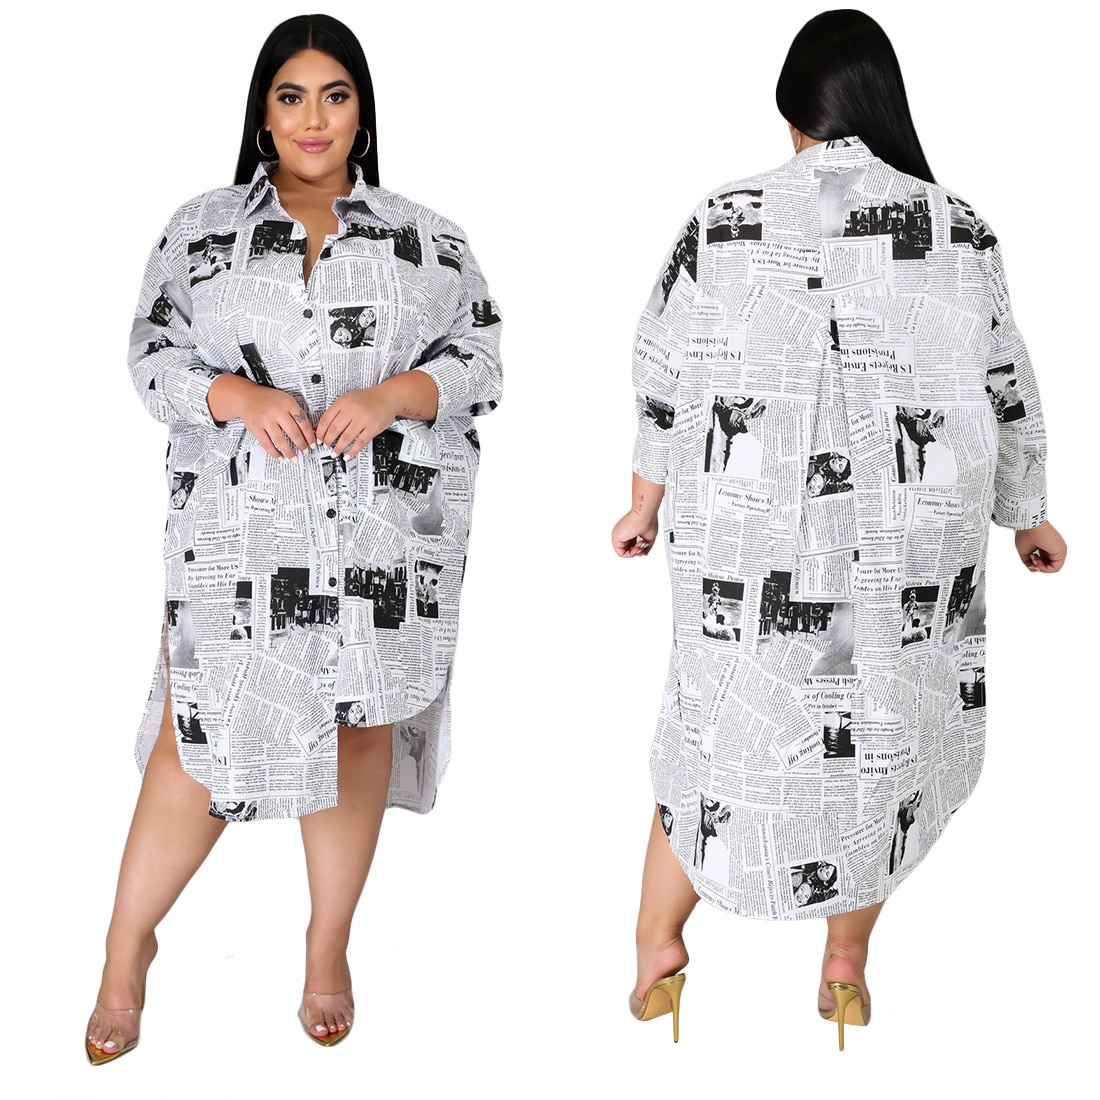 Coolhappy 2021 Plus SizeSpring Casual Newspaper Printed White Loose Shirt Blouse Women Clothes Long Sleeve Vintage Party Dress Dresses  2